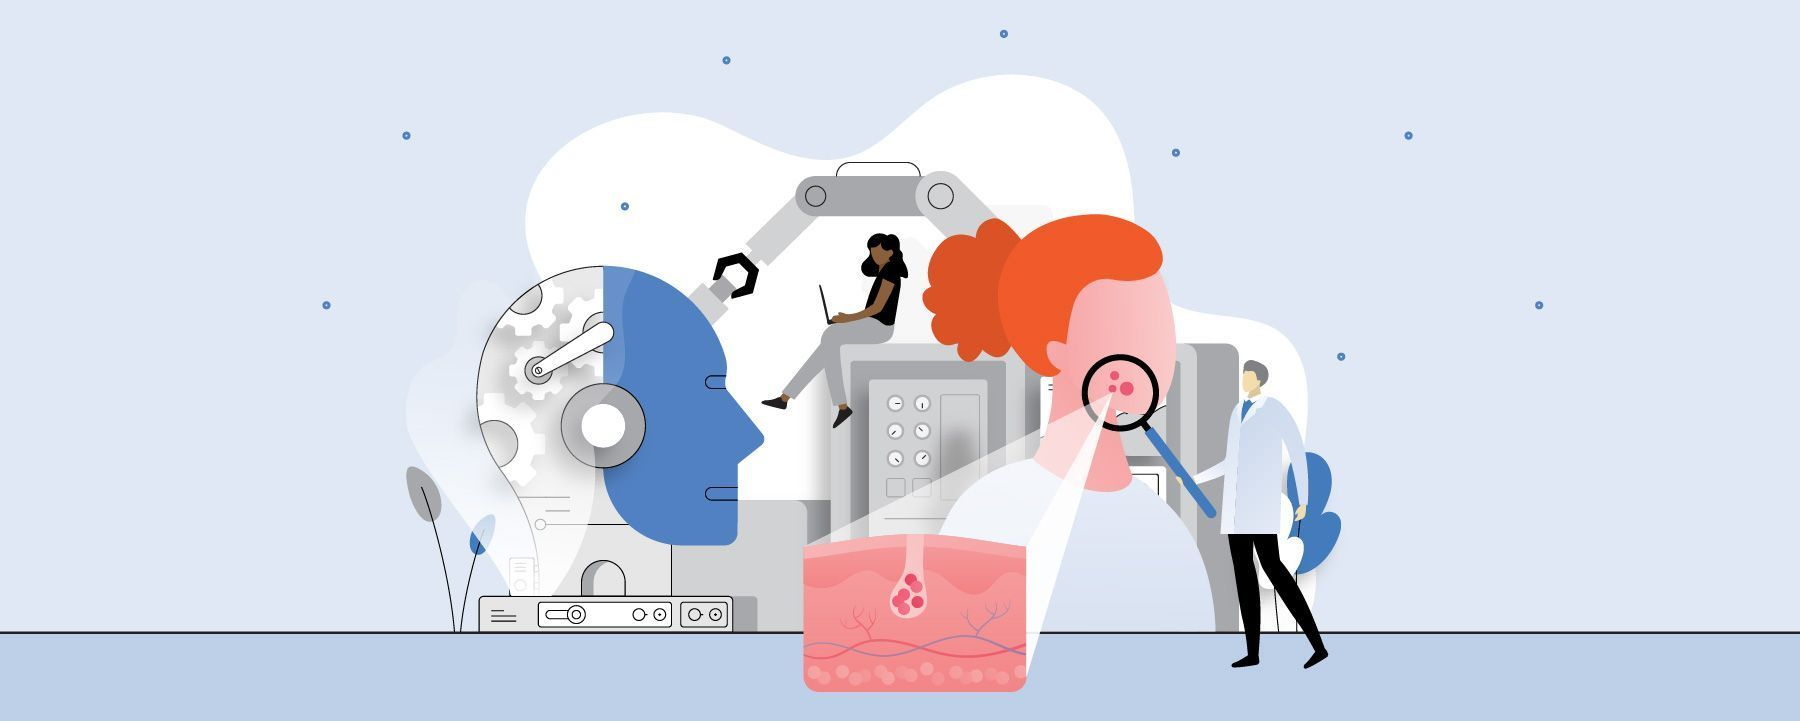 Opinion: AI Could Aid Cancer Diagnosis, but Caution Is Needed